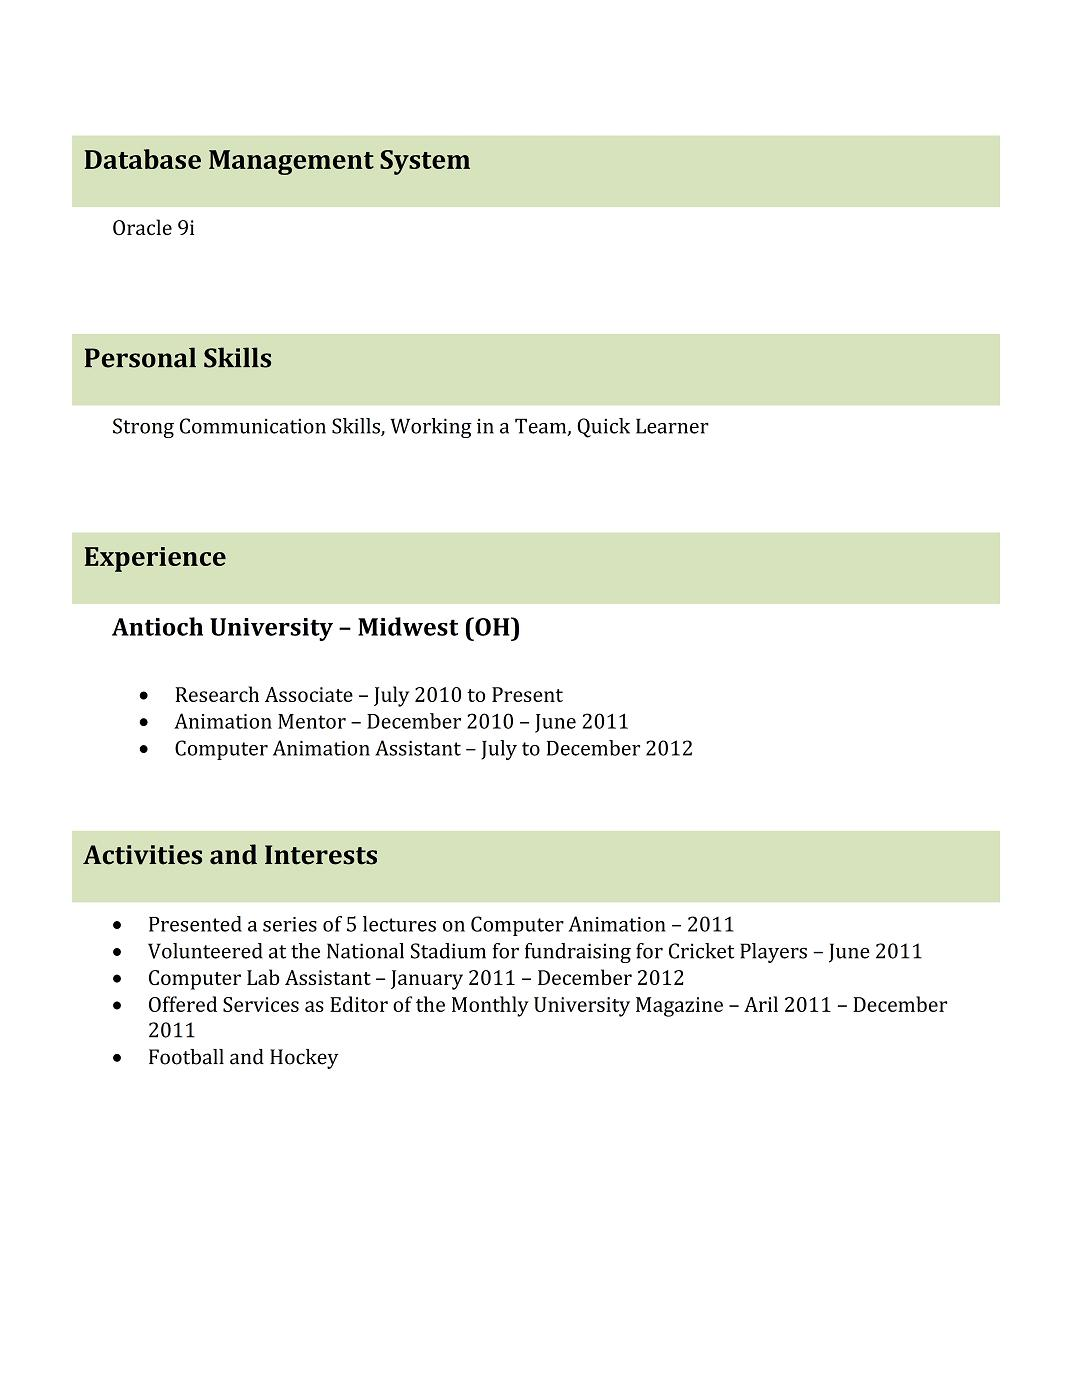 resume examples top visual resume worldwide send your visual resume example